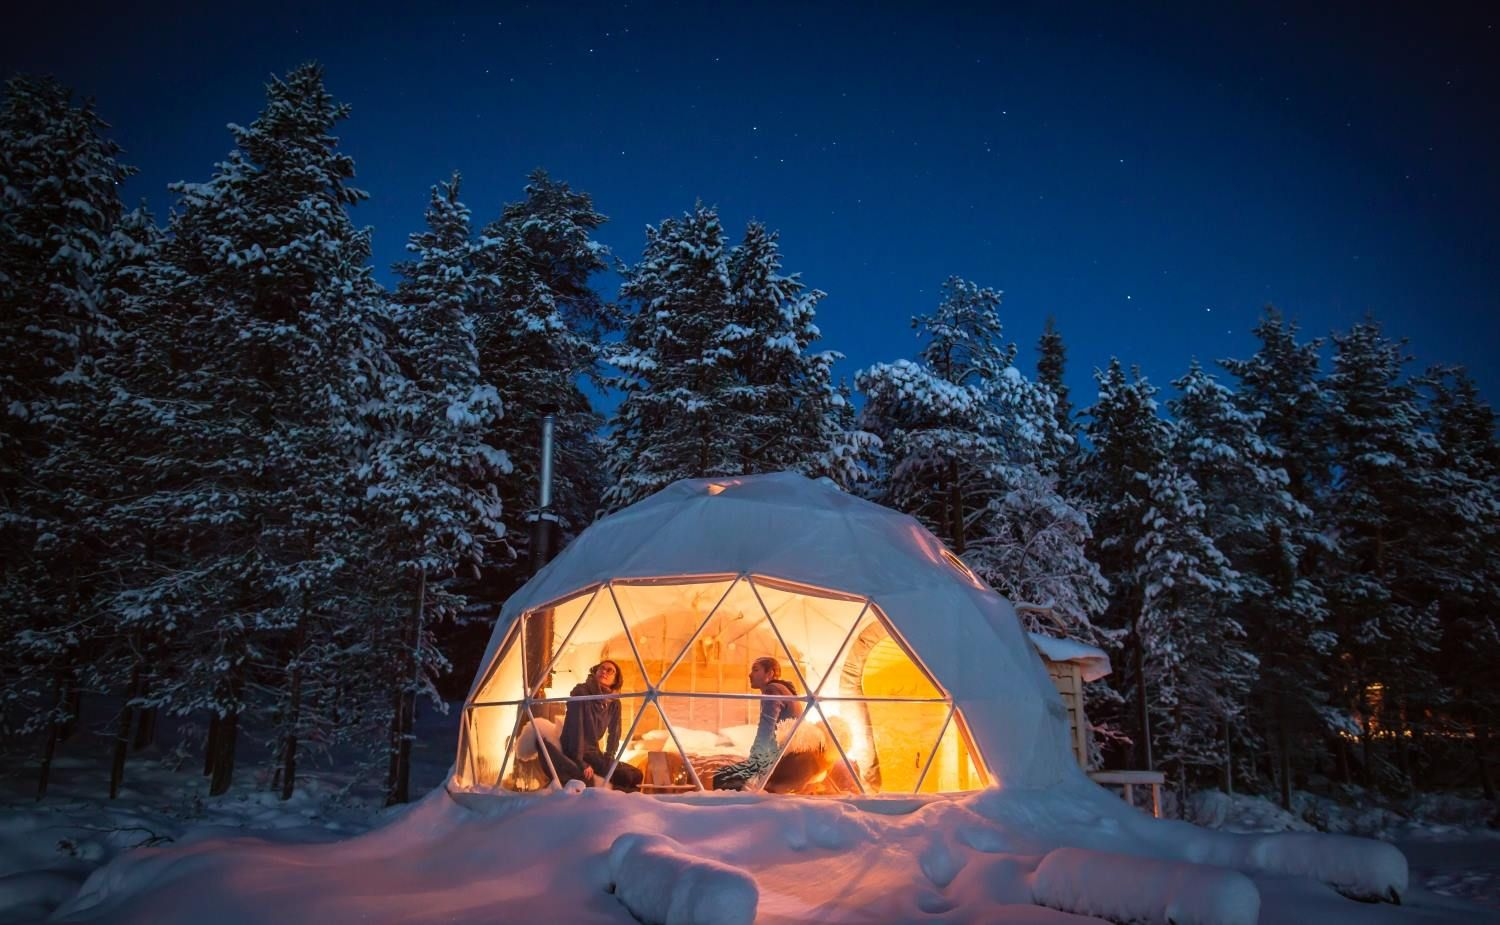 Geodesic Aurora Domes offer stunning views of the Northern Lights